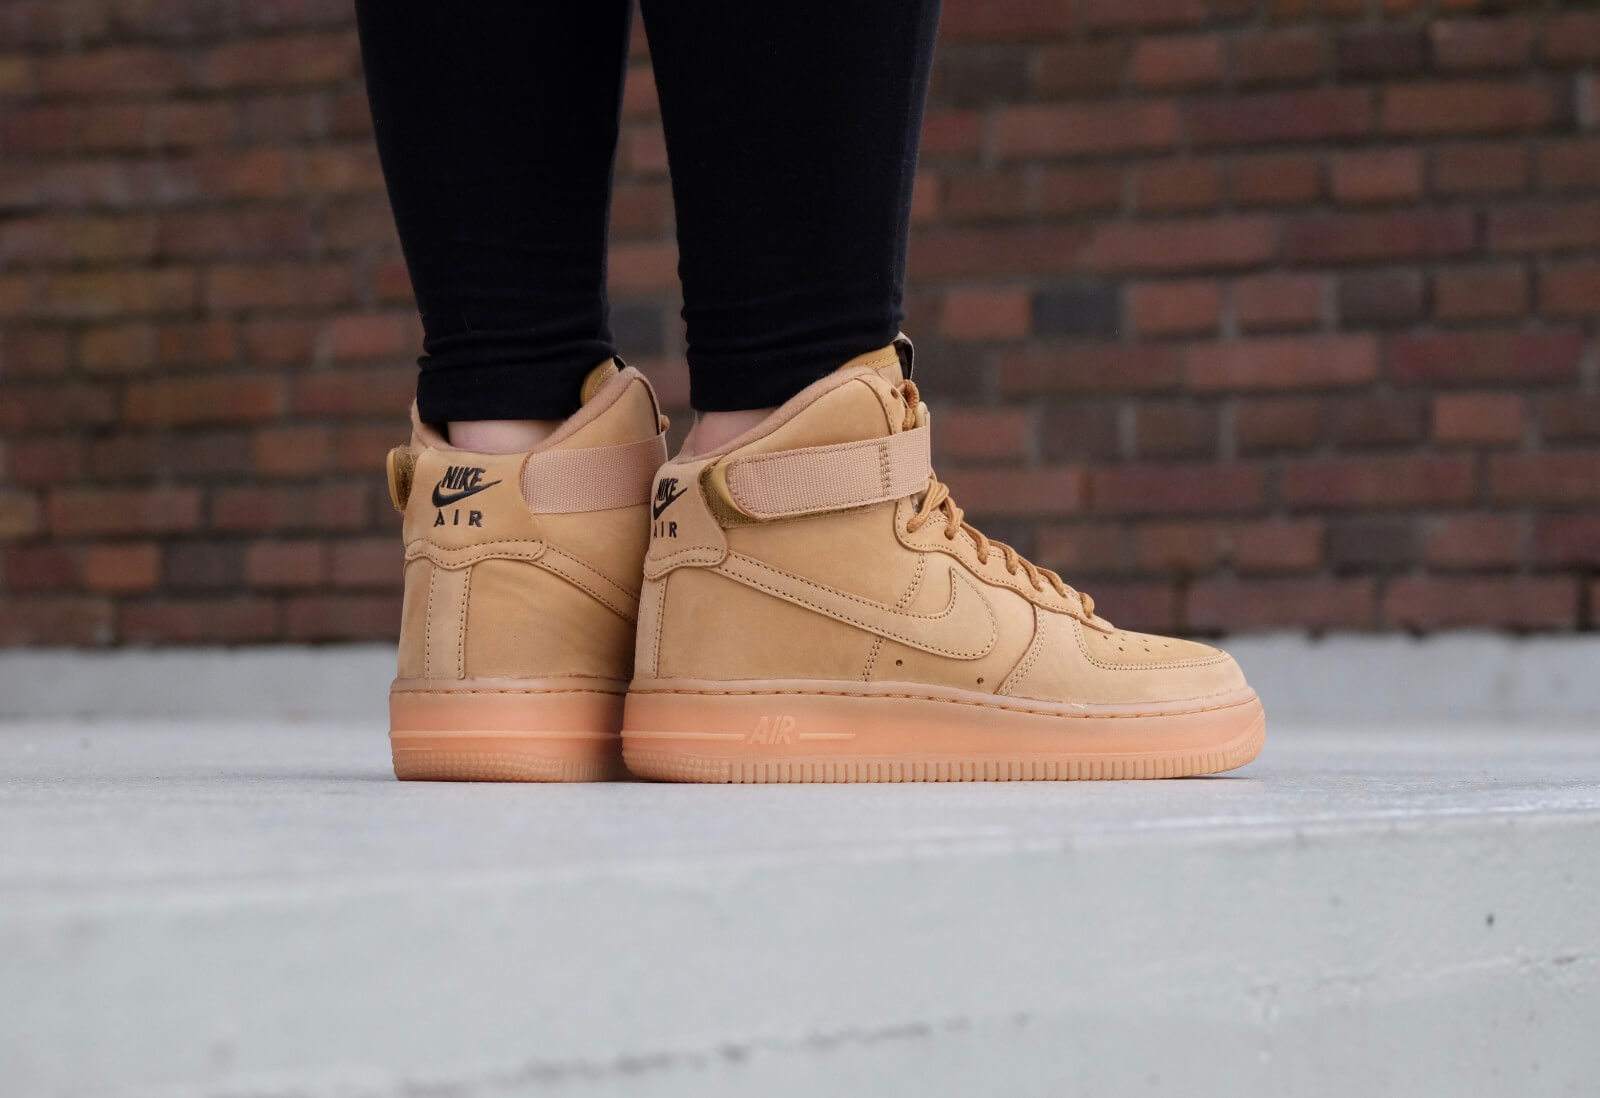 7816c0272a6f51 nike air force 1 high lv8 flax